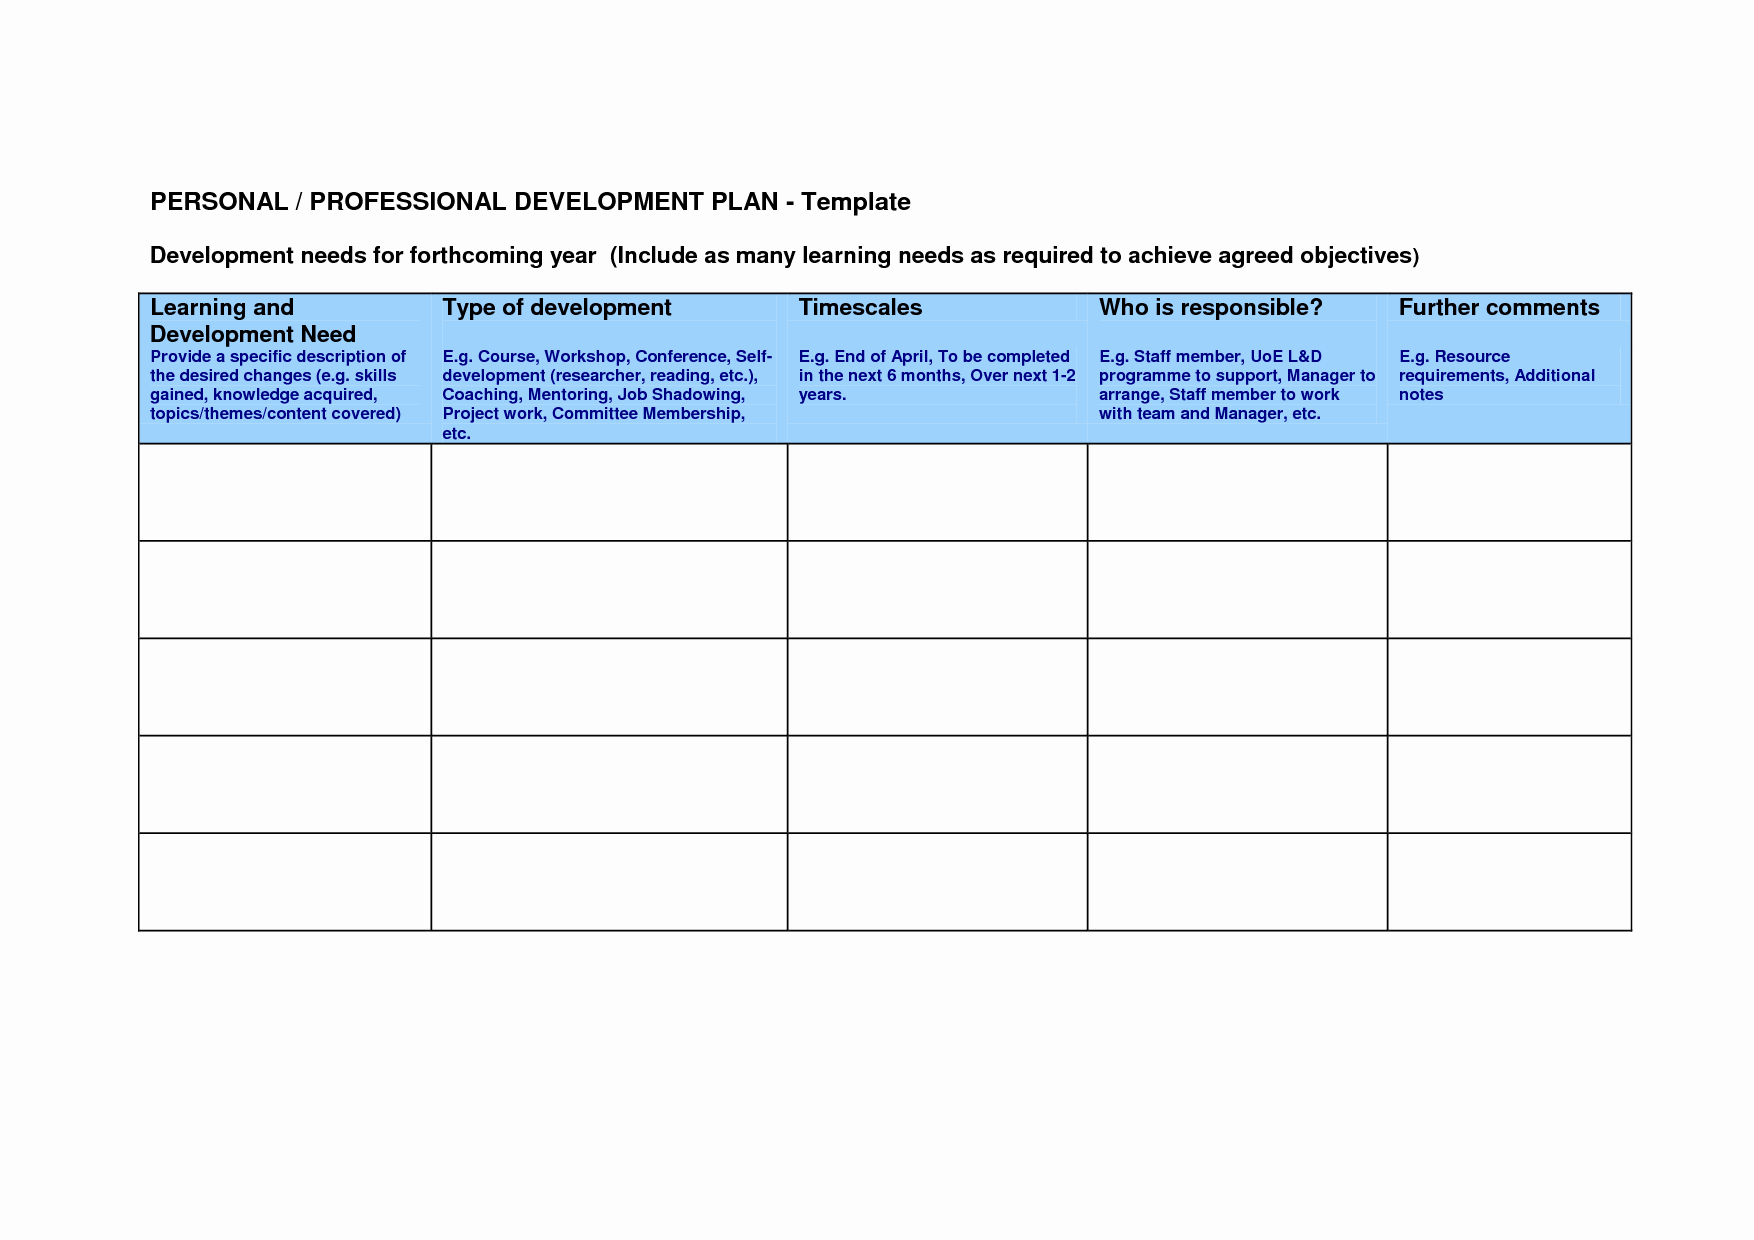 Employee Development Plan Template Unique Professional Development Plan Template